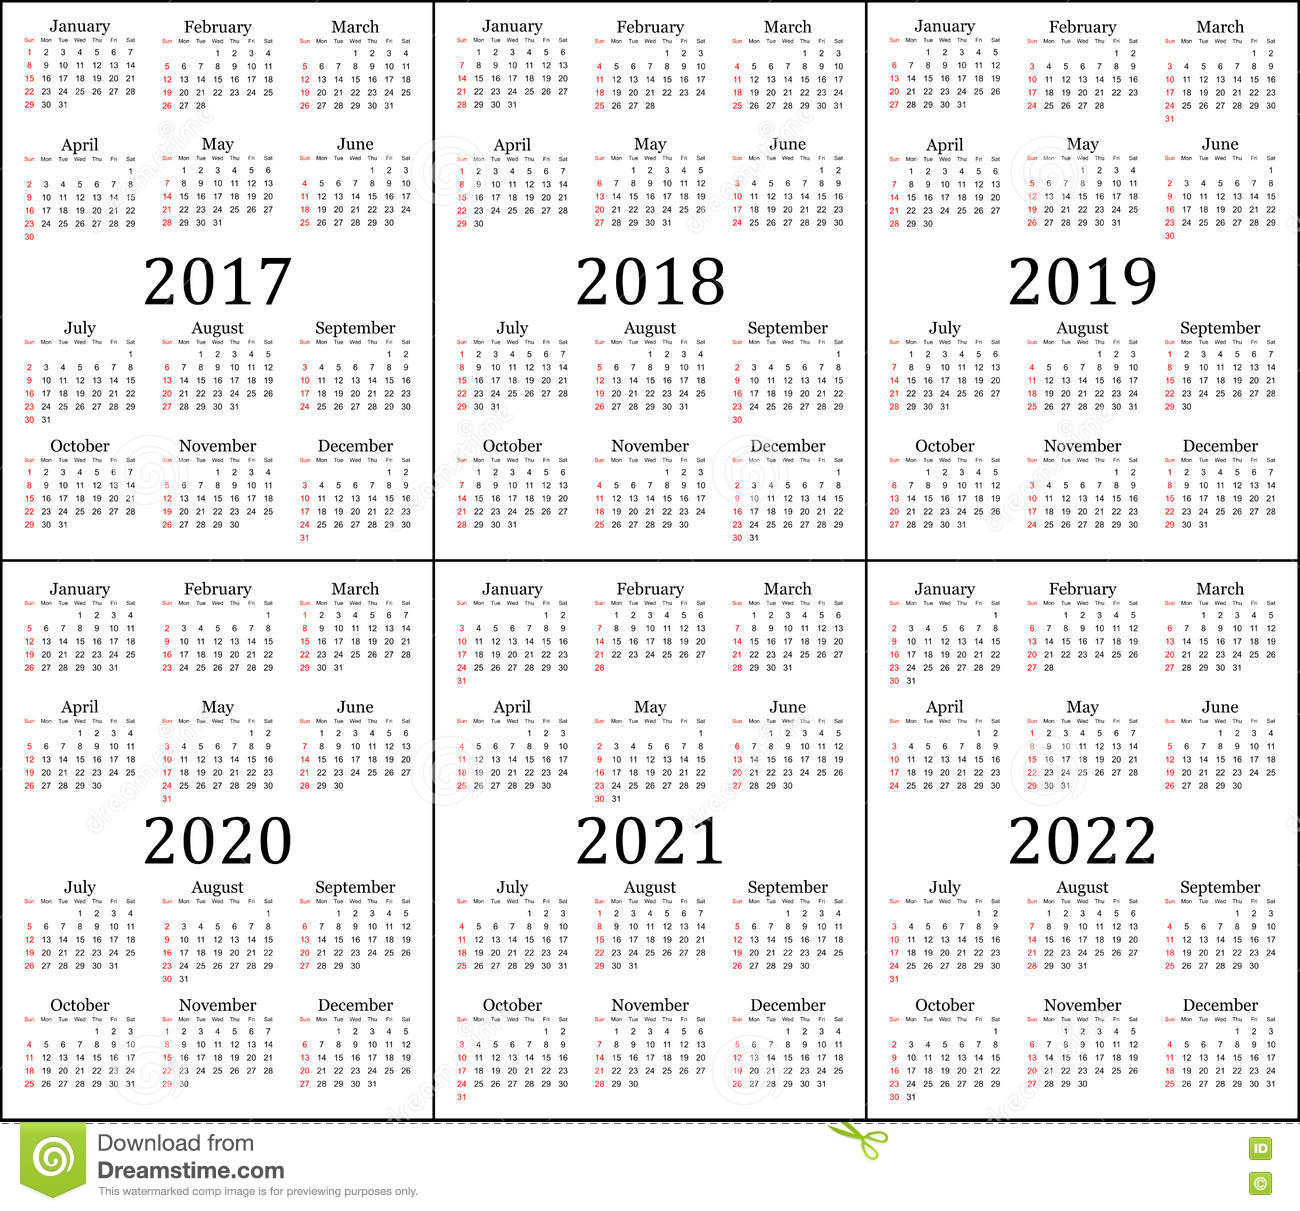 Six Year Calendar - 2017, 2018, 2019, 2020, 2021 And 2022 Stock